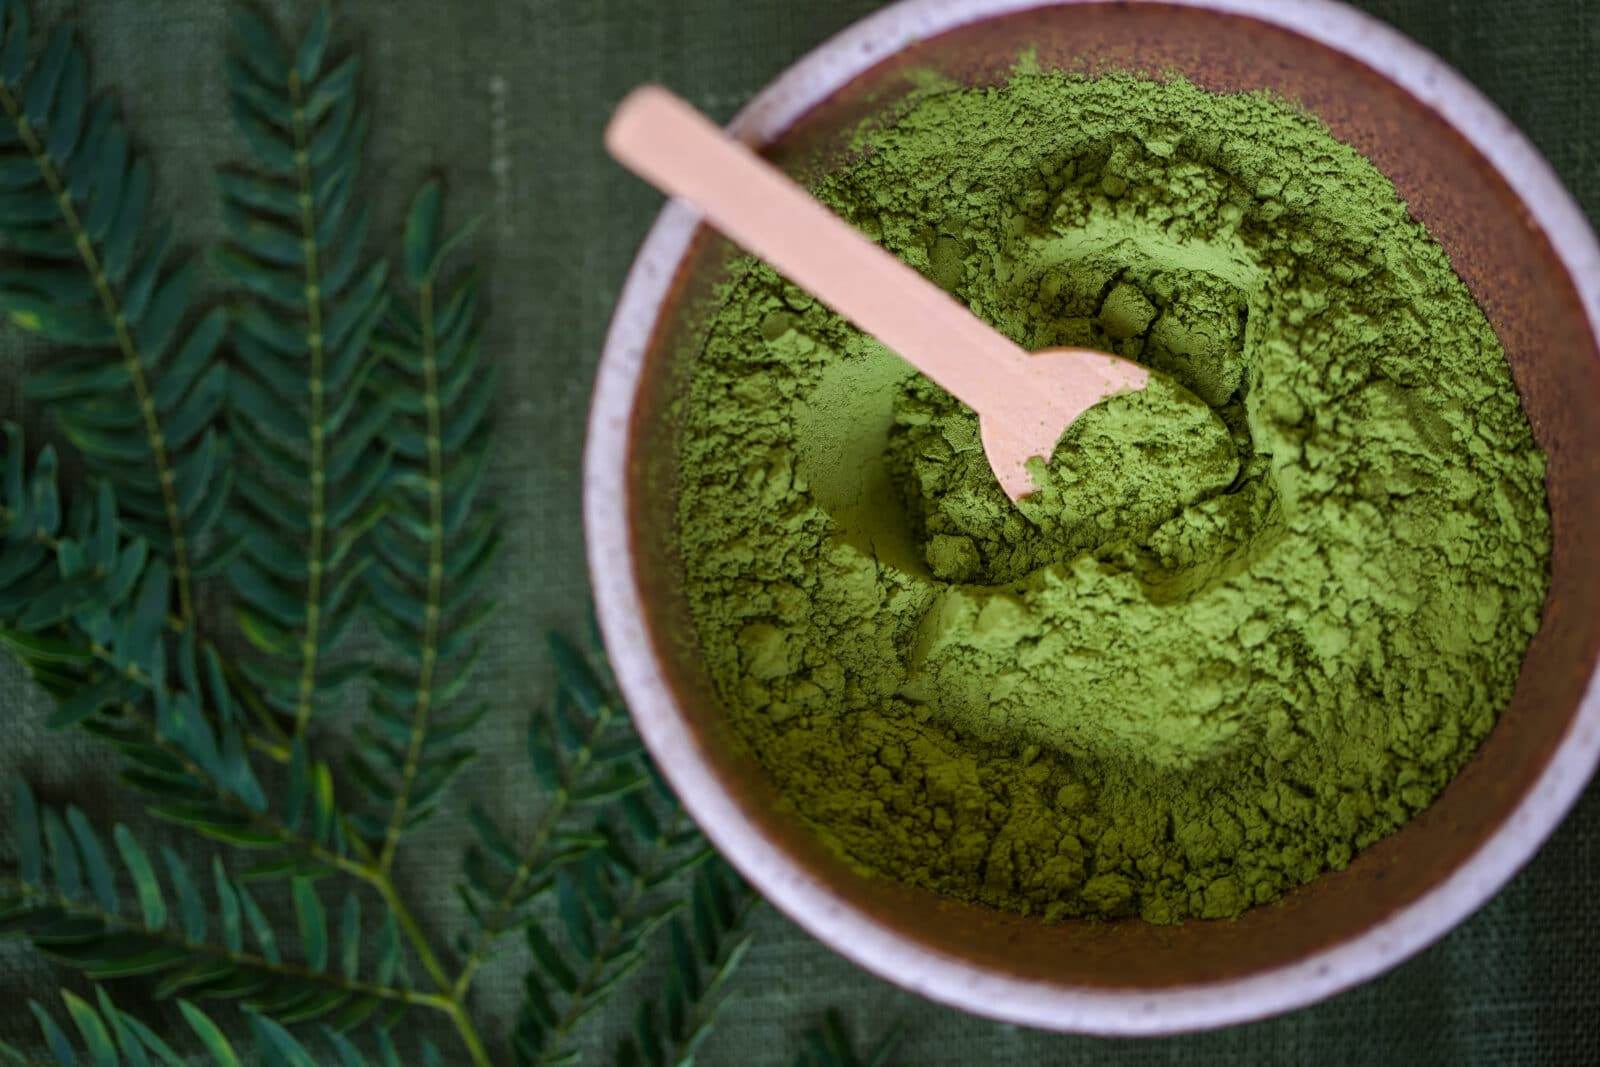 Green Vietnam Kratom Powder | Green Leaf Kratom